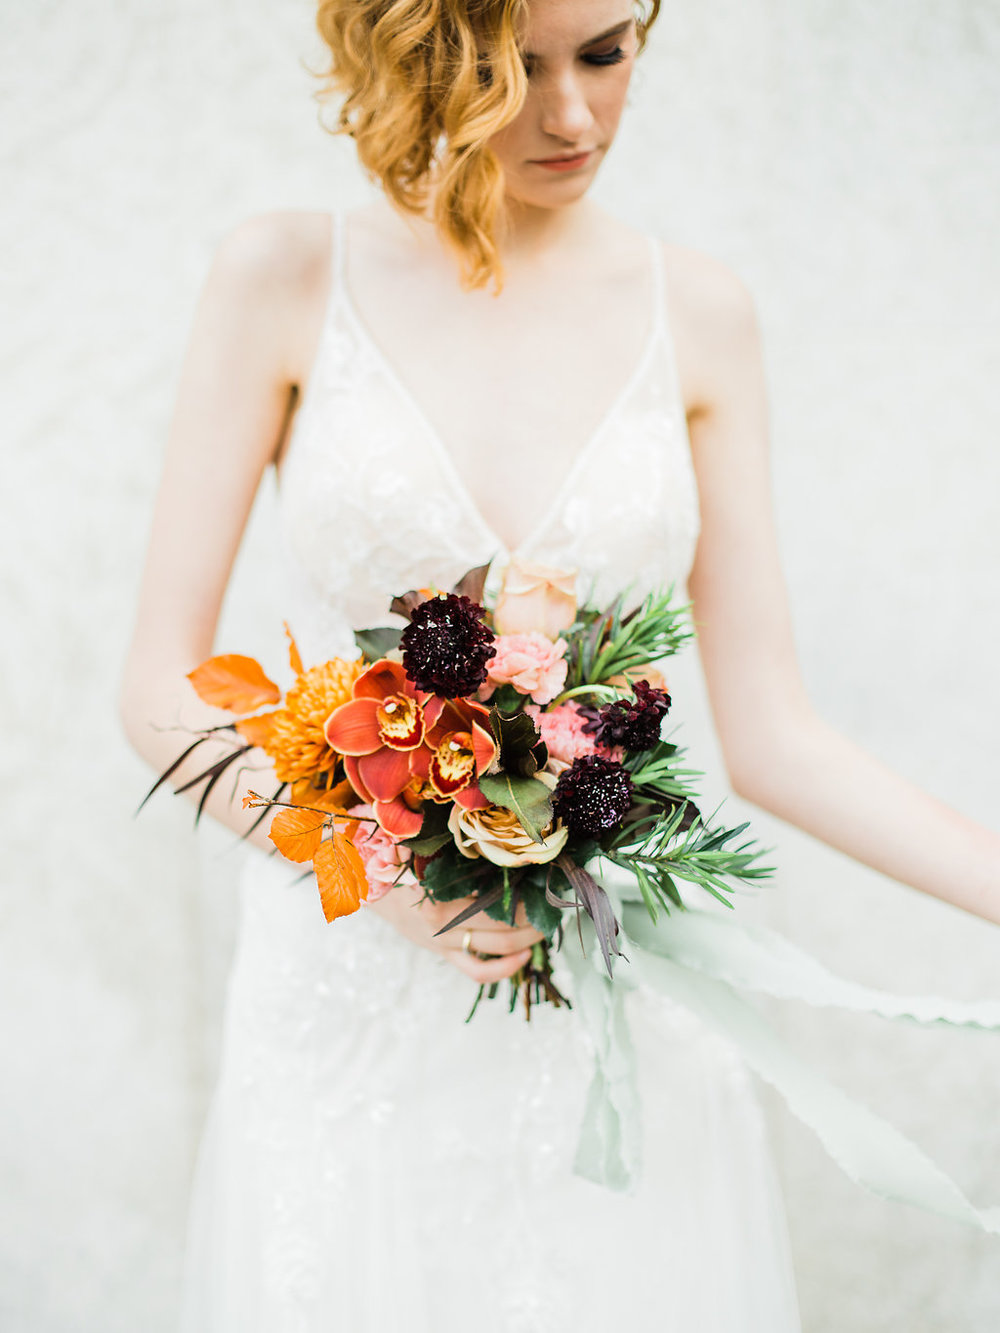 Small Sized Wedding Bouquet - Fall Wedding Flowers